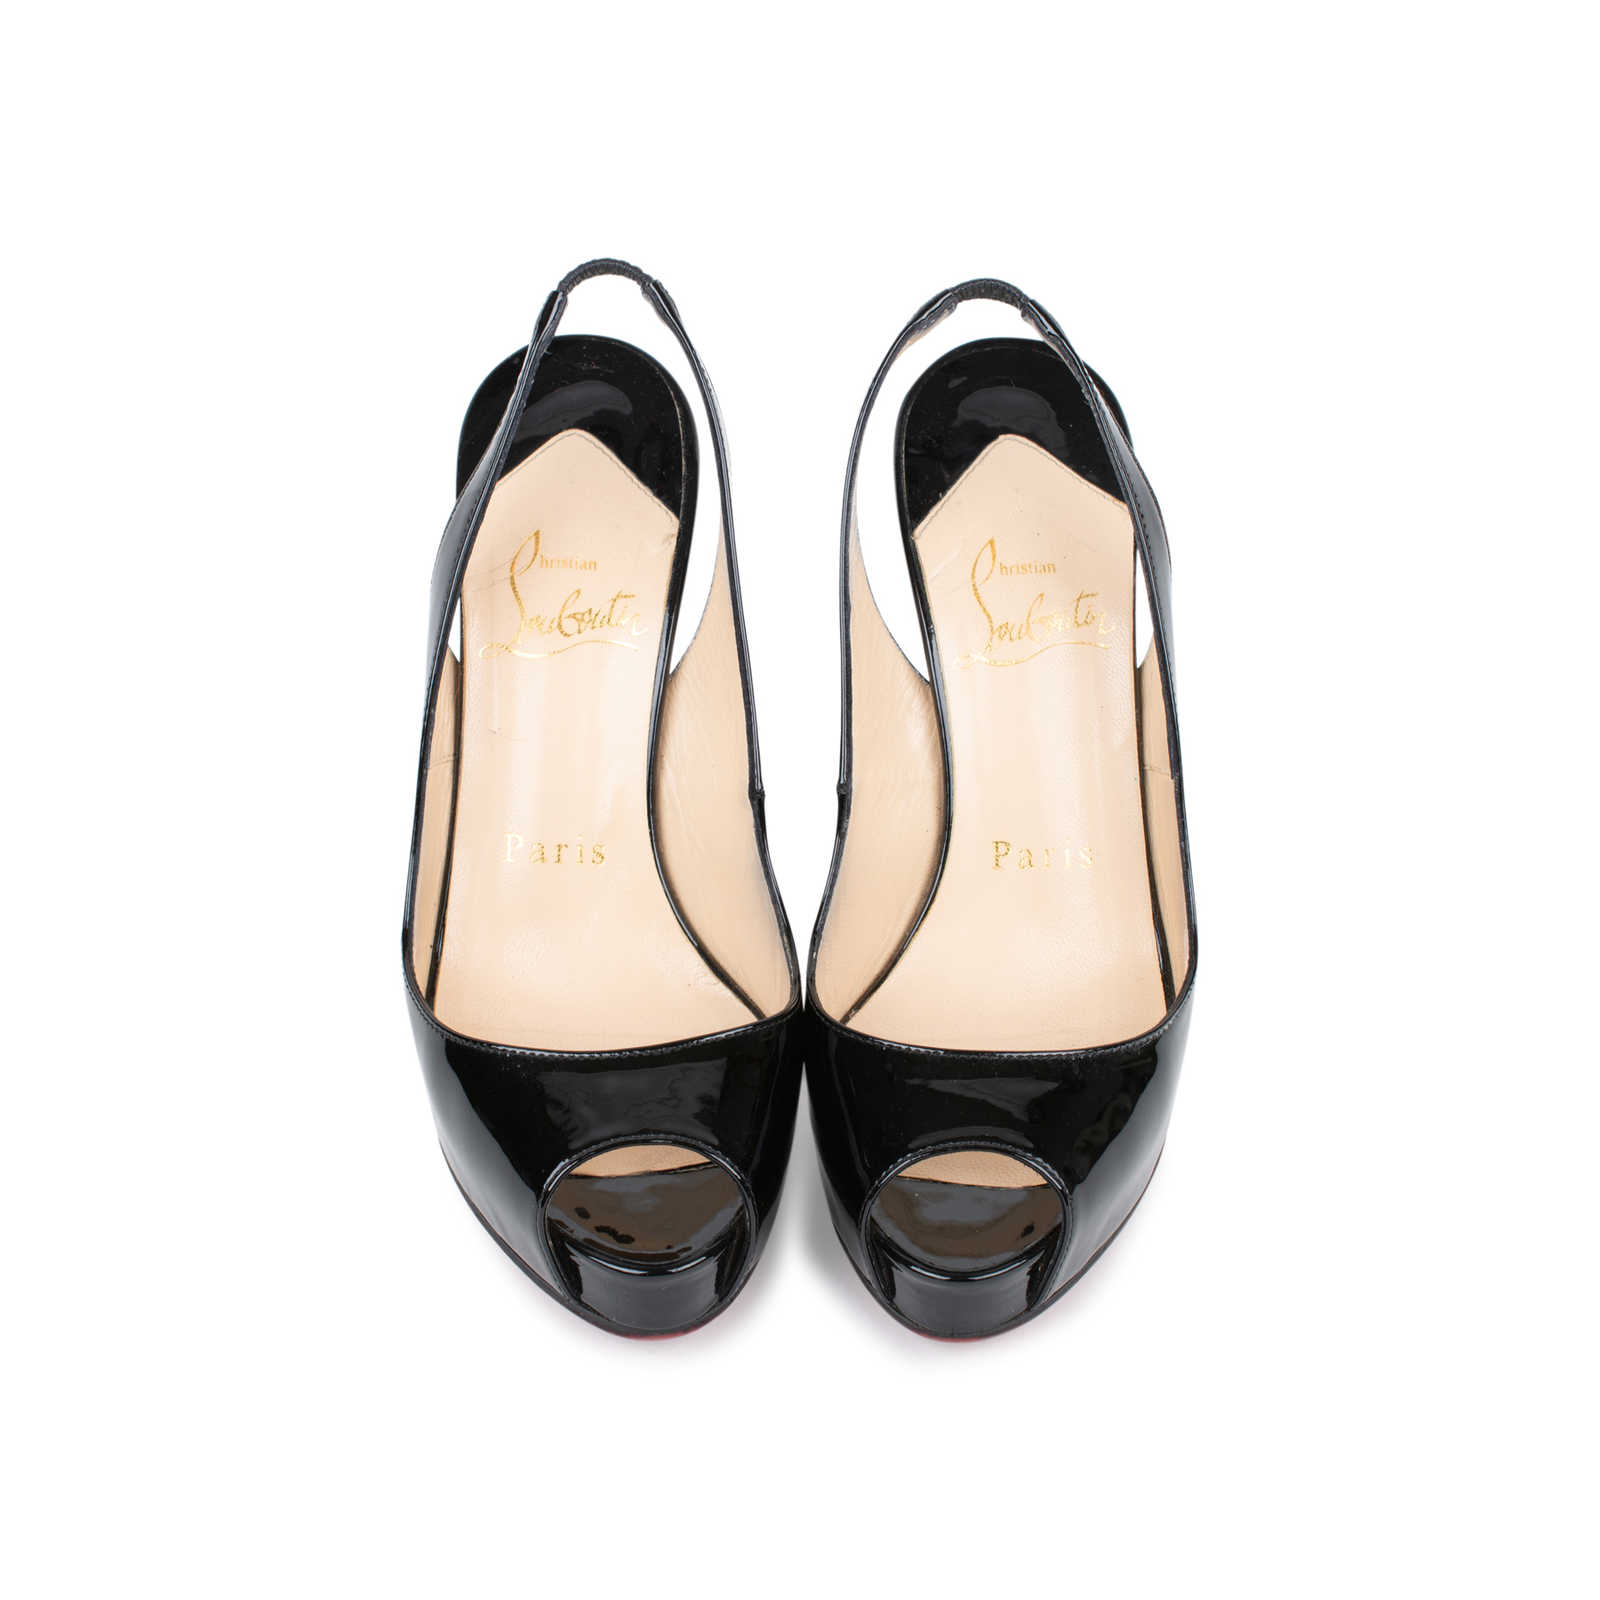 c6c13acb5e51 Authentic Second Hand Christian Louboutin No Prive 120mm Patent Slingbacks  (PSS-225-00035 ...